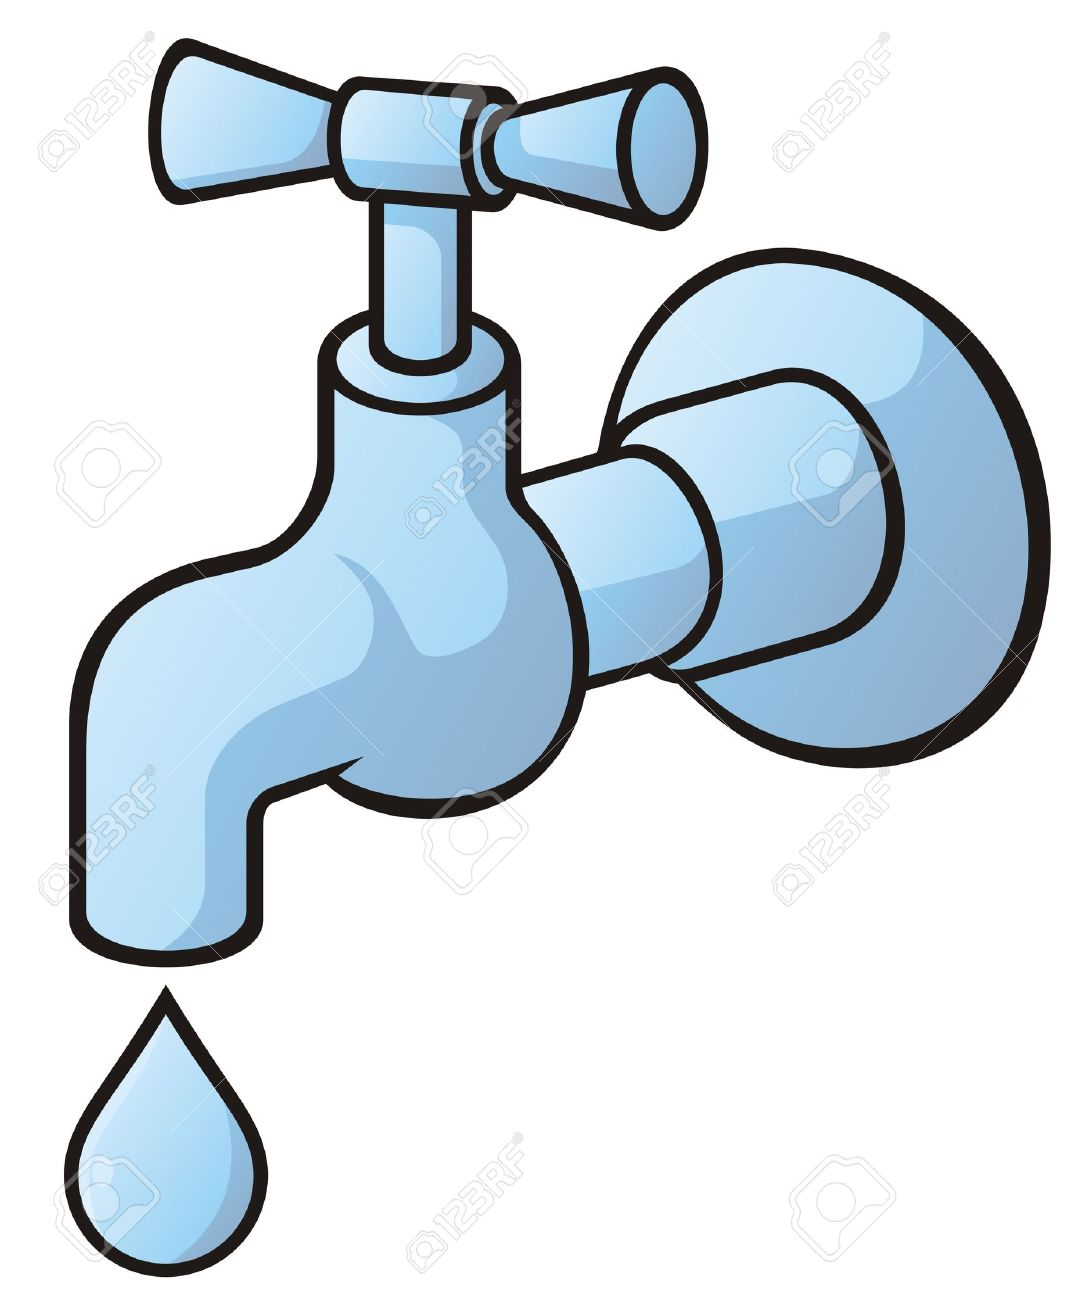 Faucet clipart leaky faucet. Free download best on